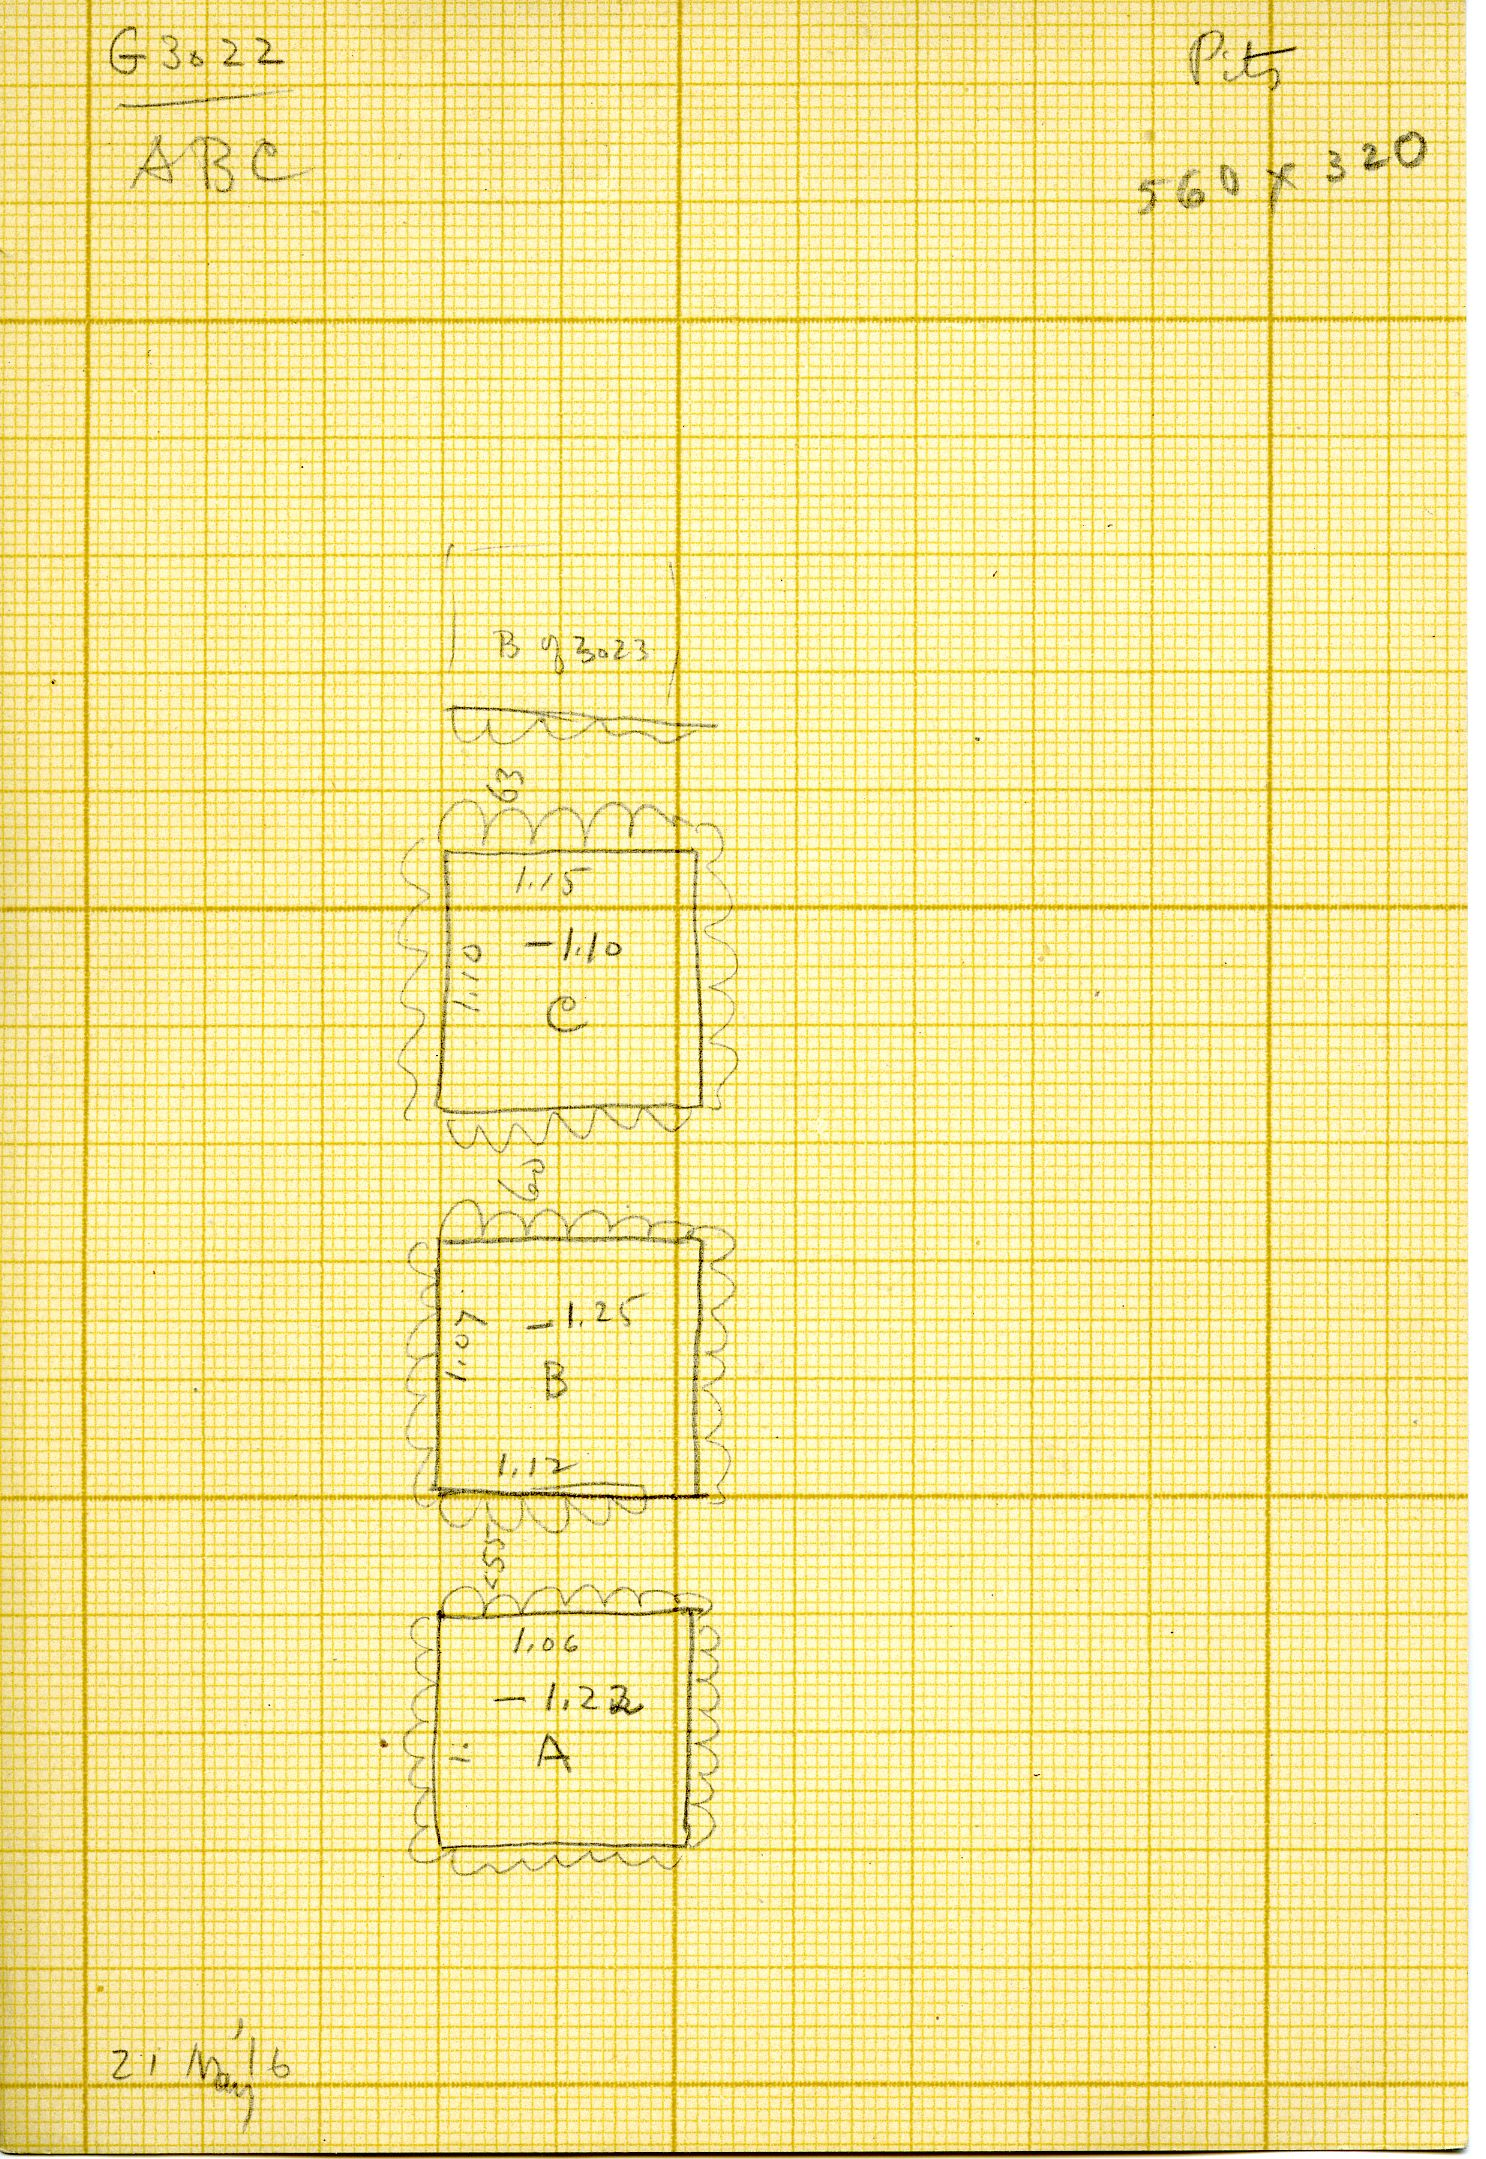 Maps and plans: G 3022, Shafts A, B, C